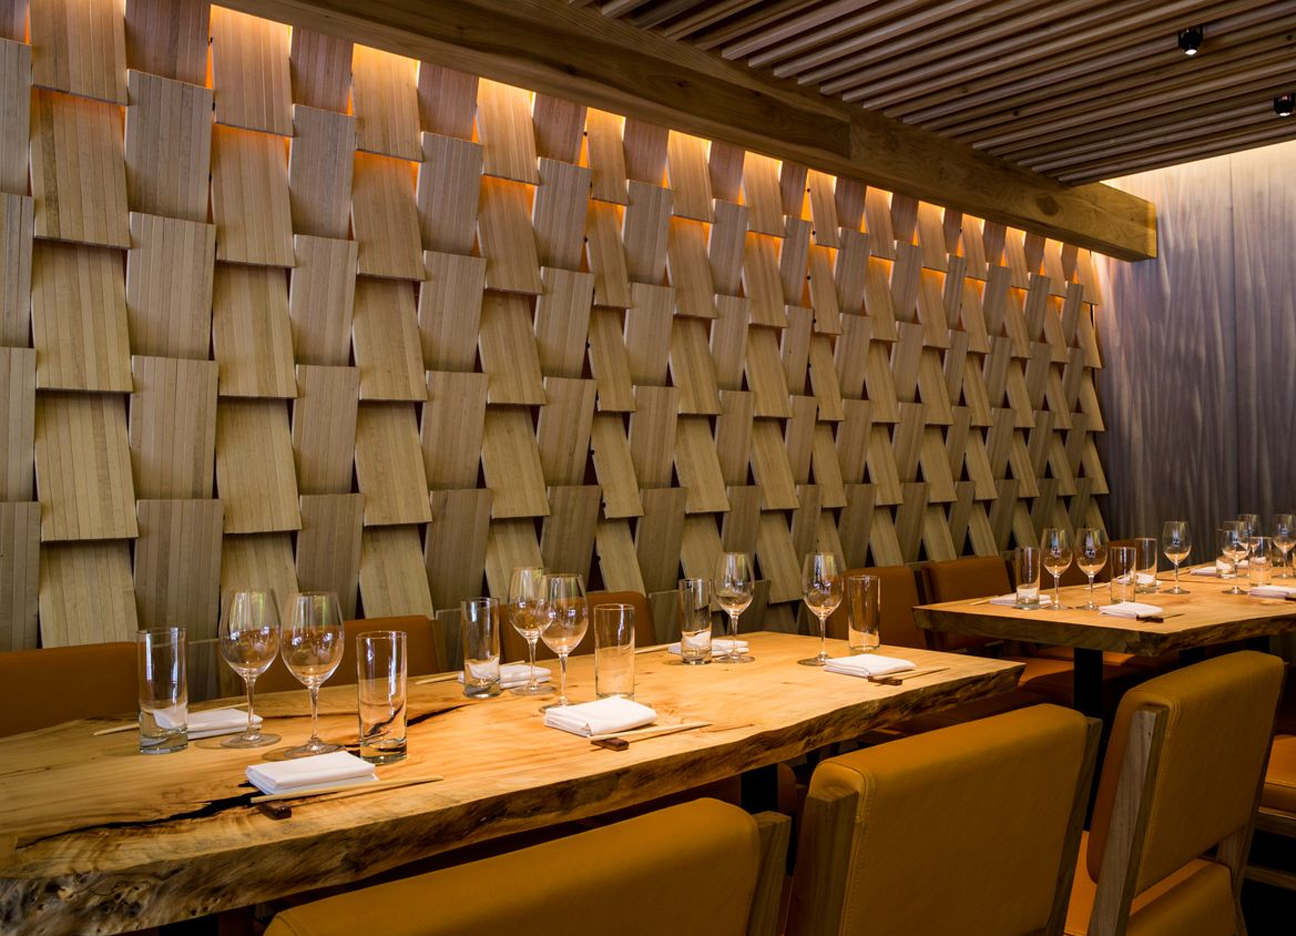 Roka Akor event space in San Francisco, SF Bay Area, San Fran